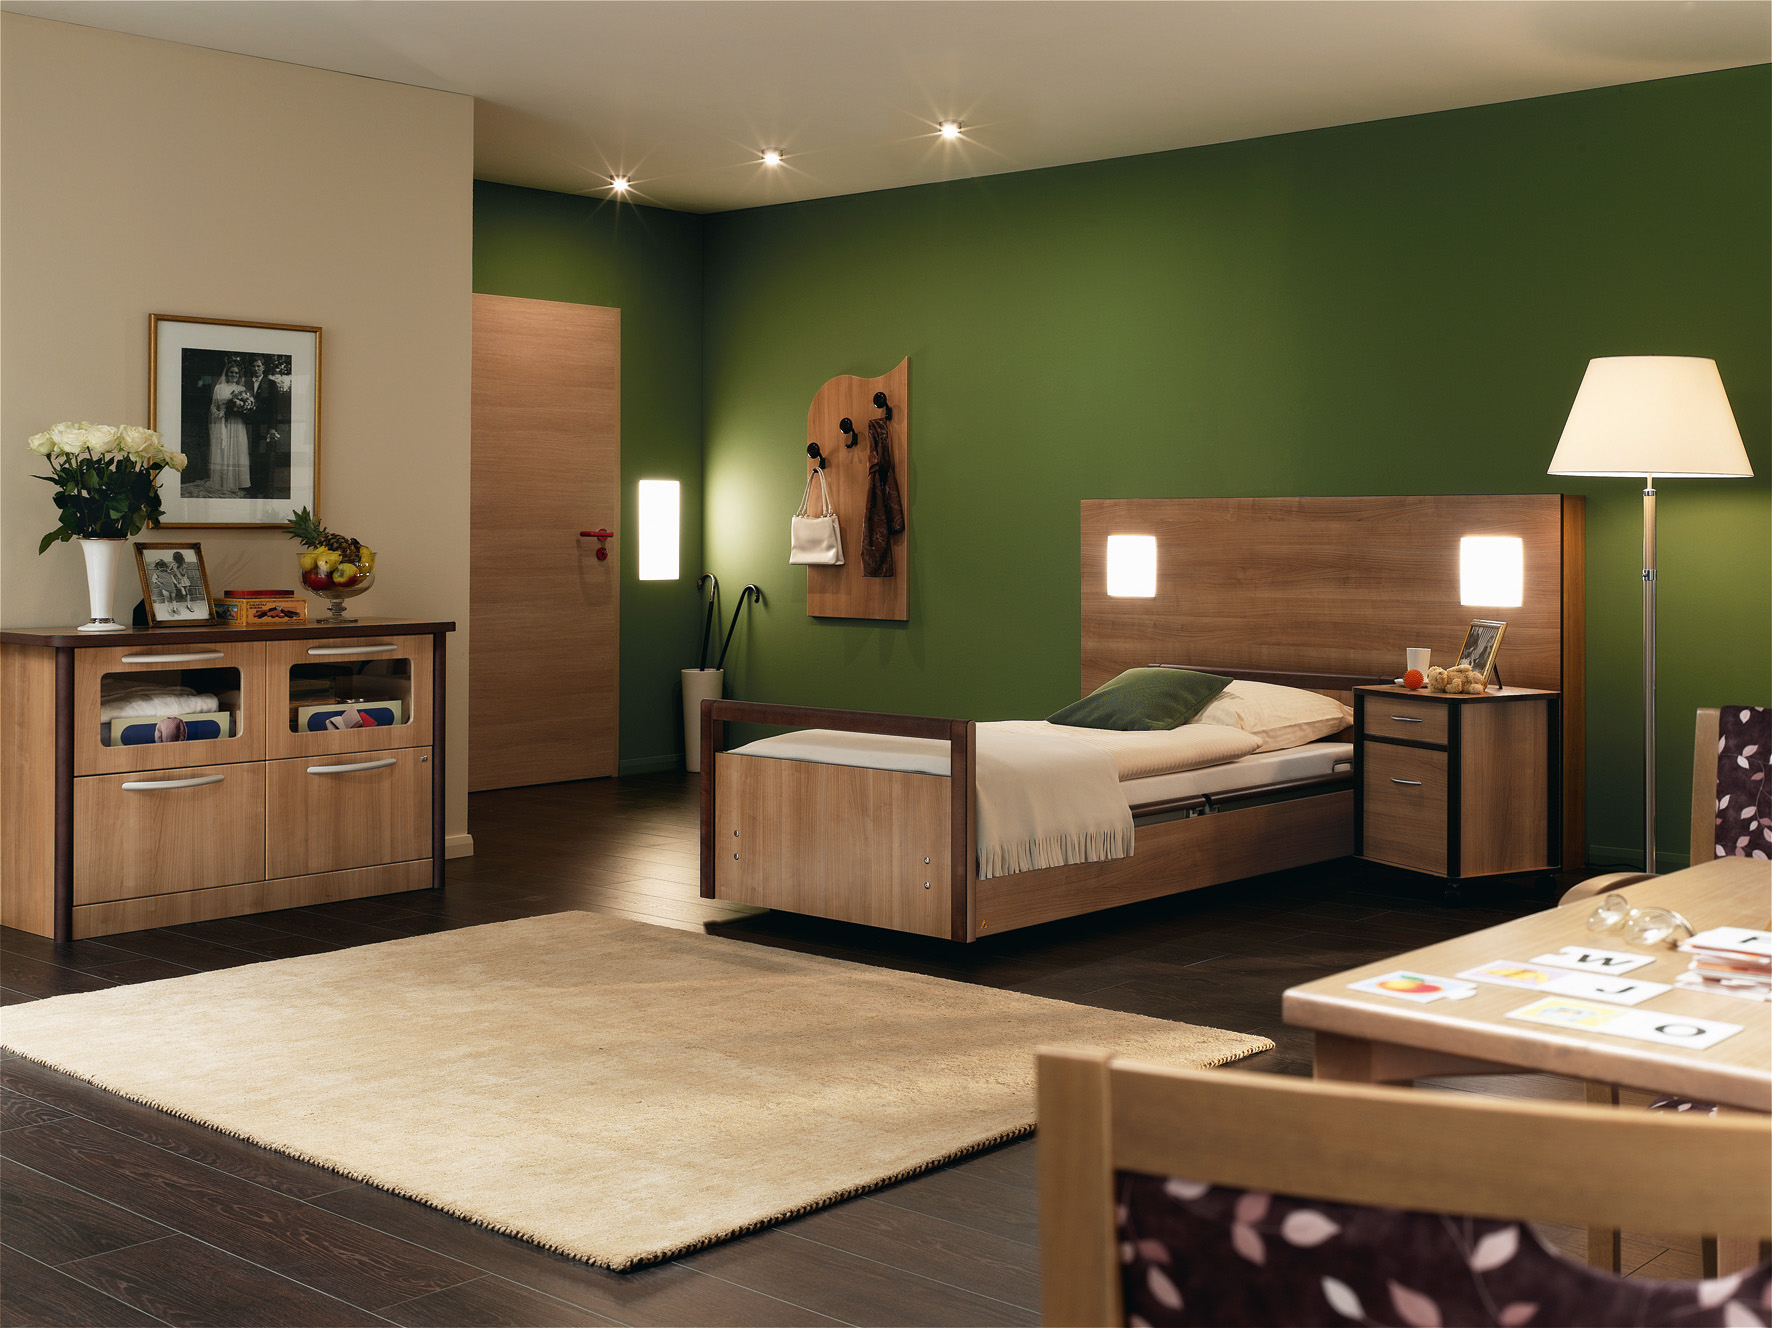 neuer online katalog von wissner bosserhoff pcon blog. Black Bedroom Furniture Sets. Home Design Ideas